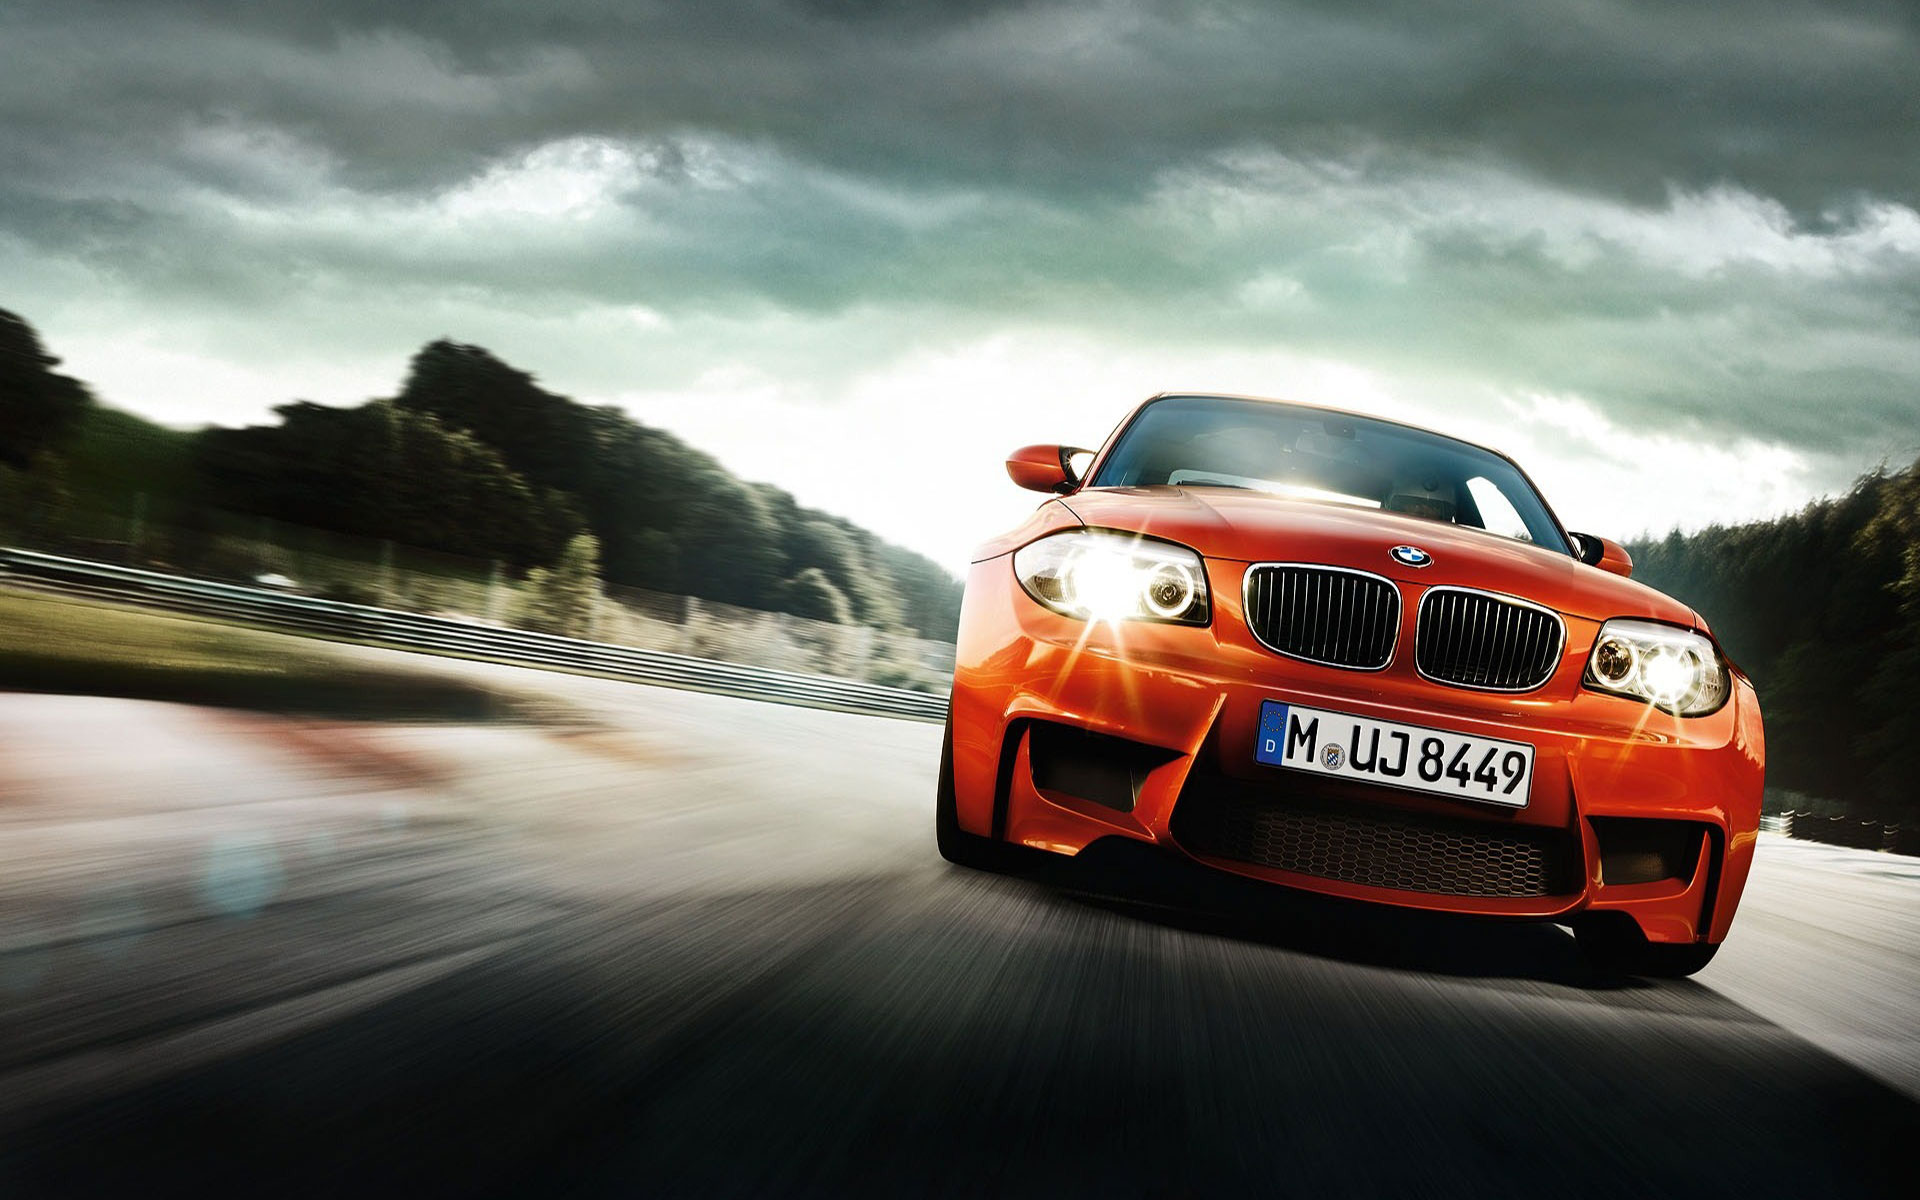 Wallpapers For Cars